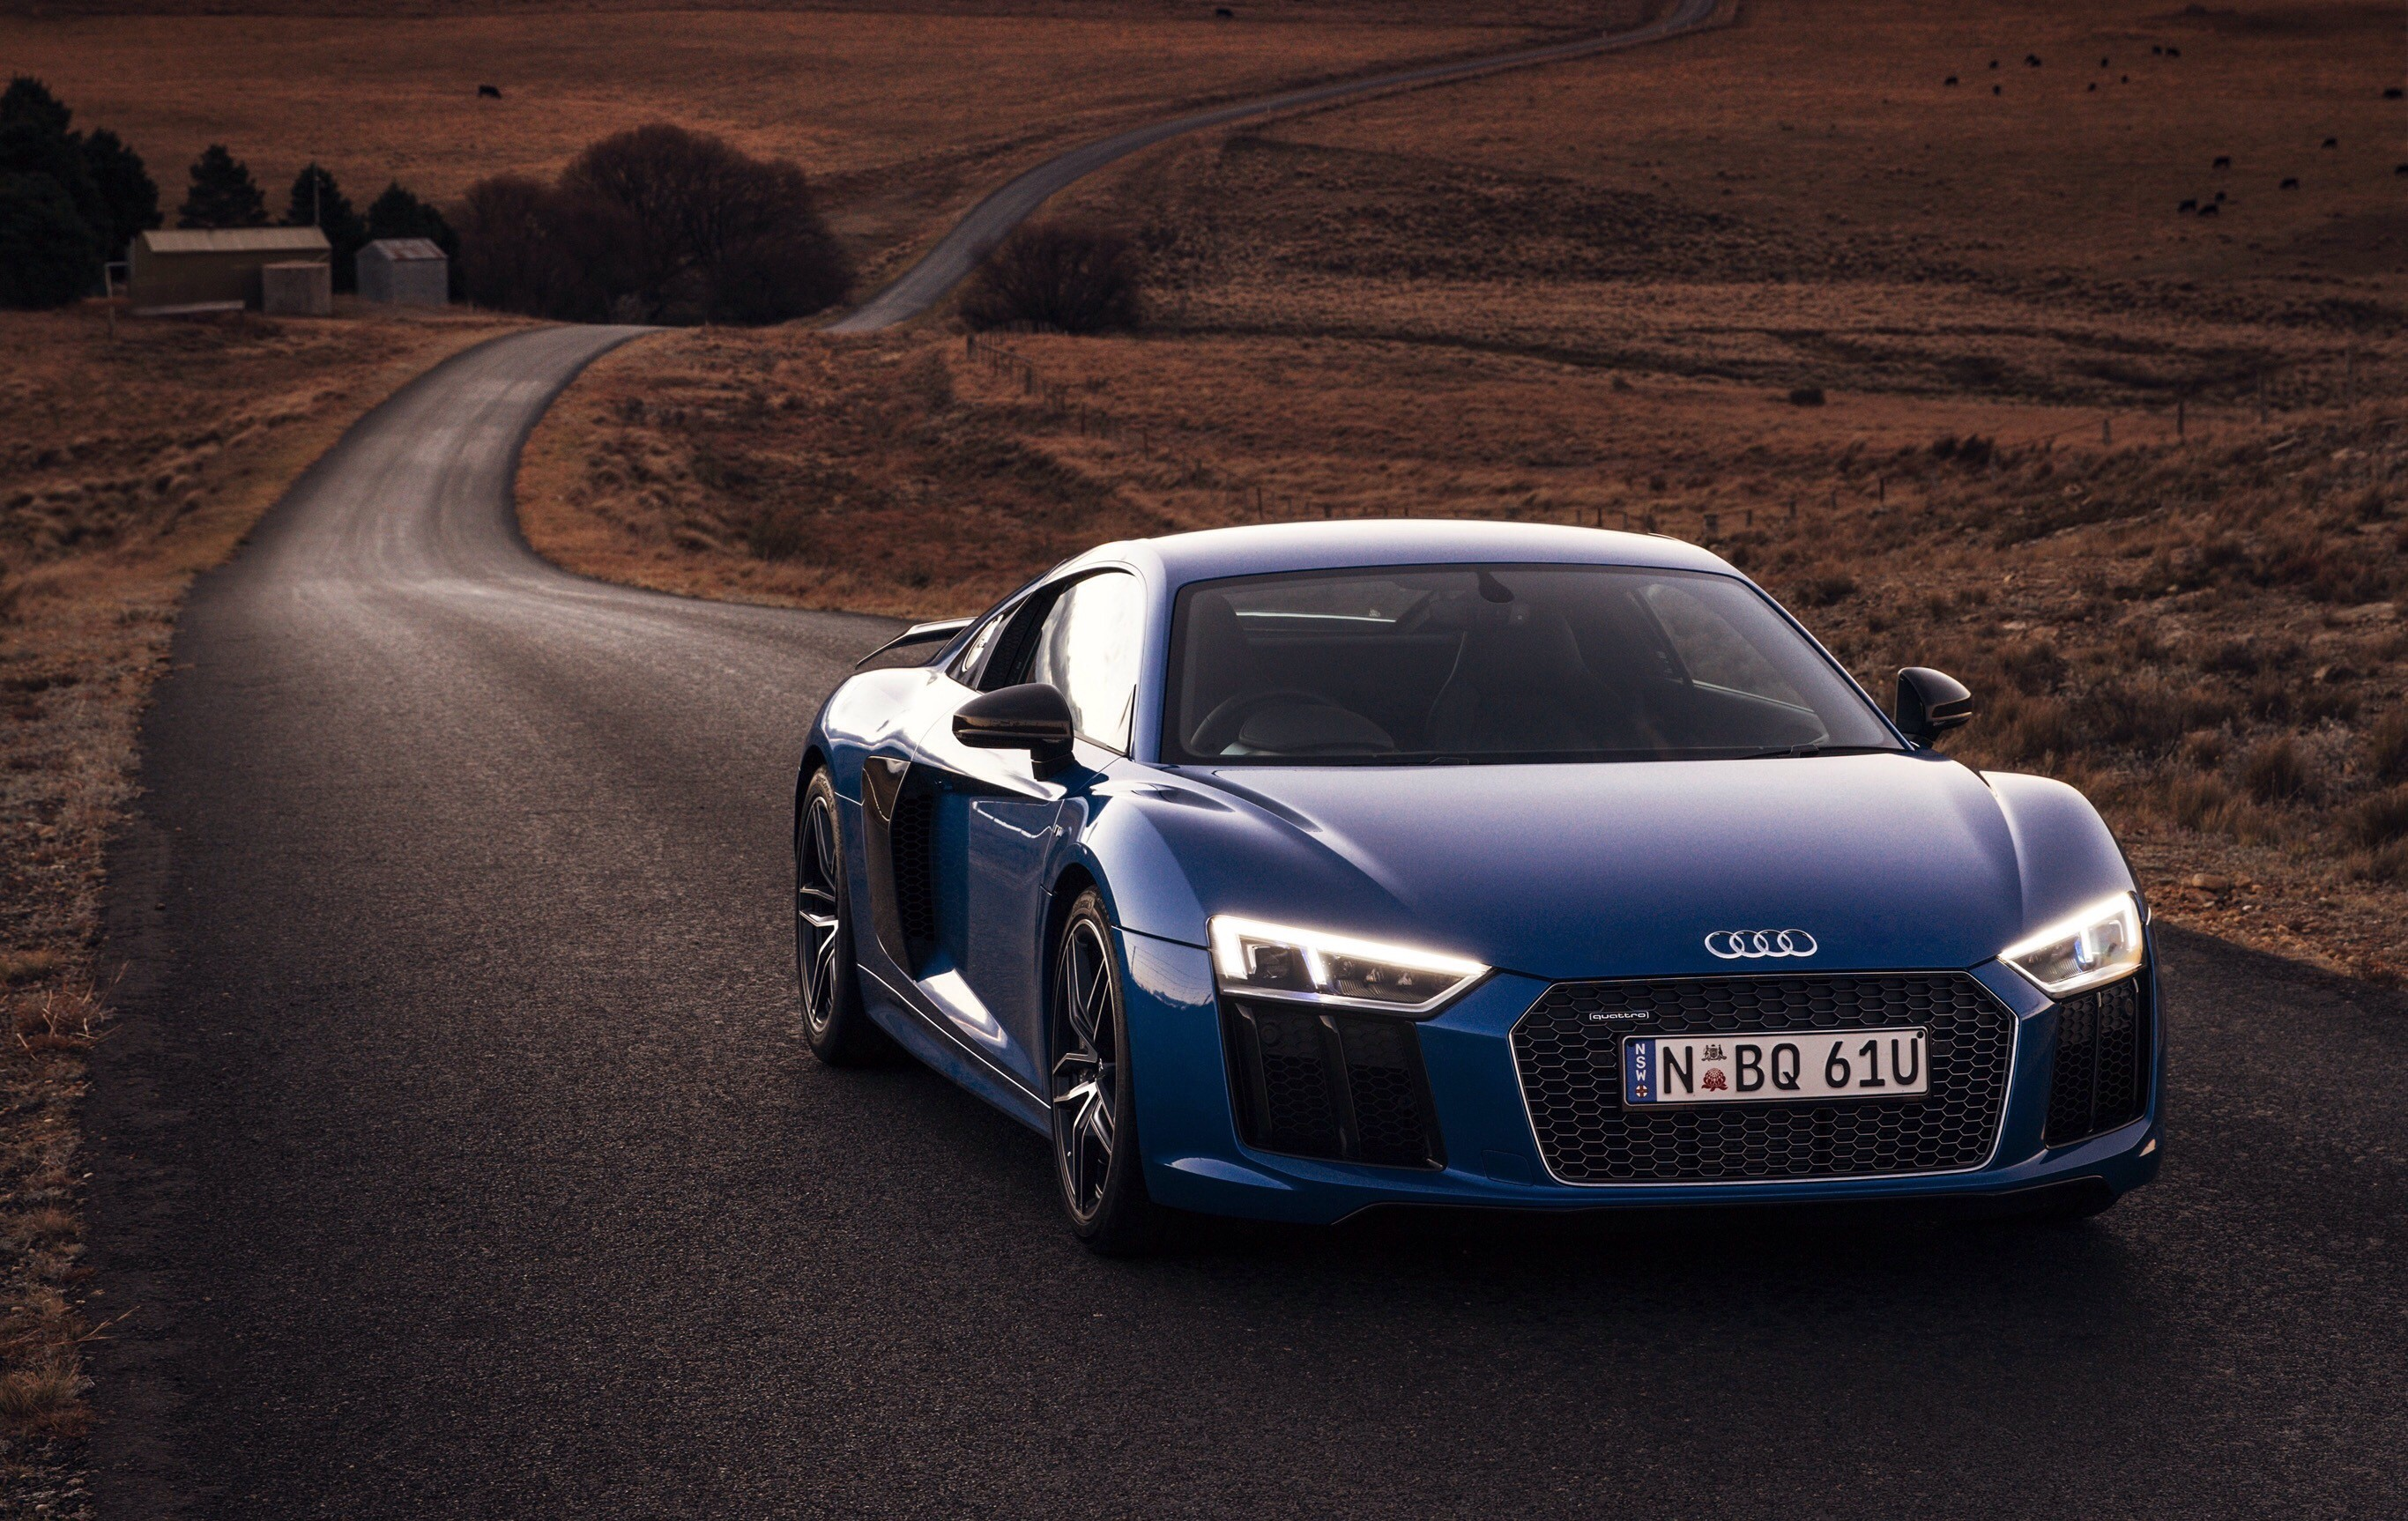 Audi R8 V10 Plus wallpaper cars Wallpaper Better 2732x1726